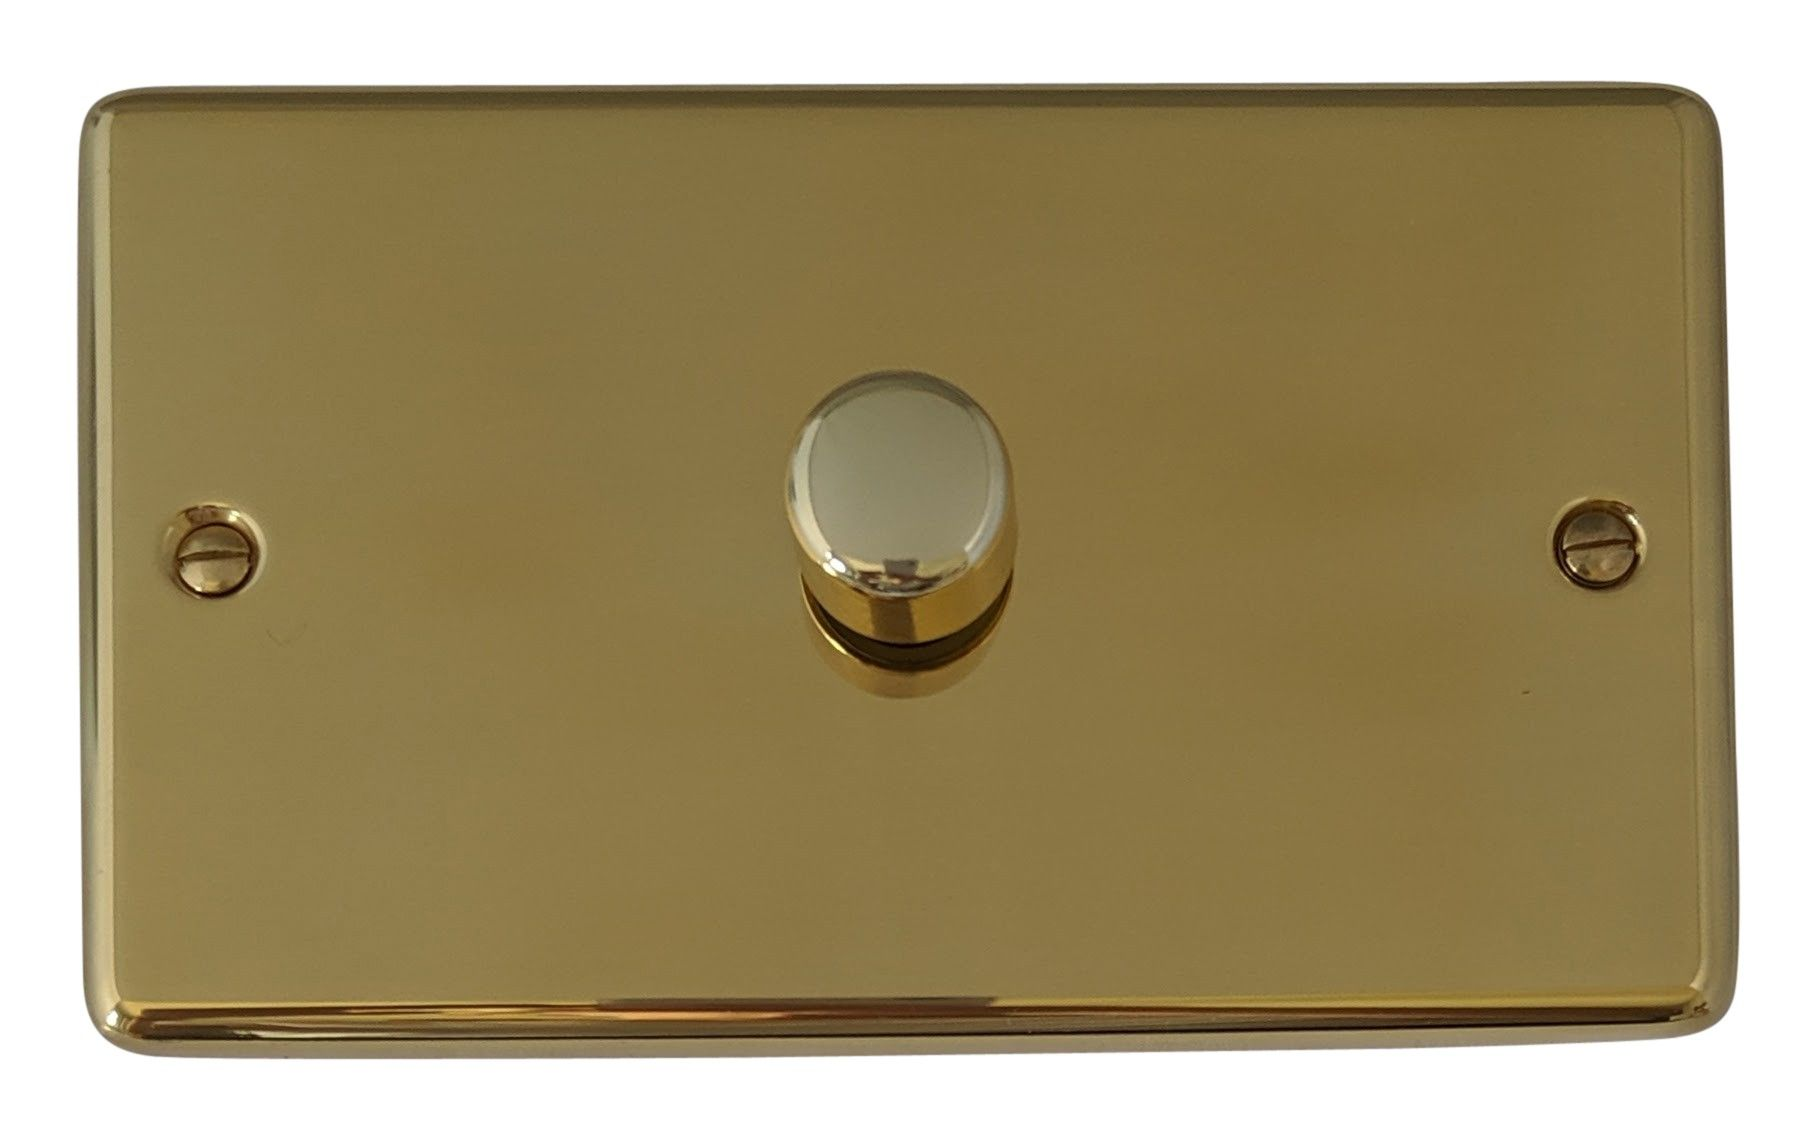 G&H CB16 Standard Plate Polished Brass 1 Gang 1 or 2 Way 700W Dimmer Switch Double Plate